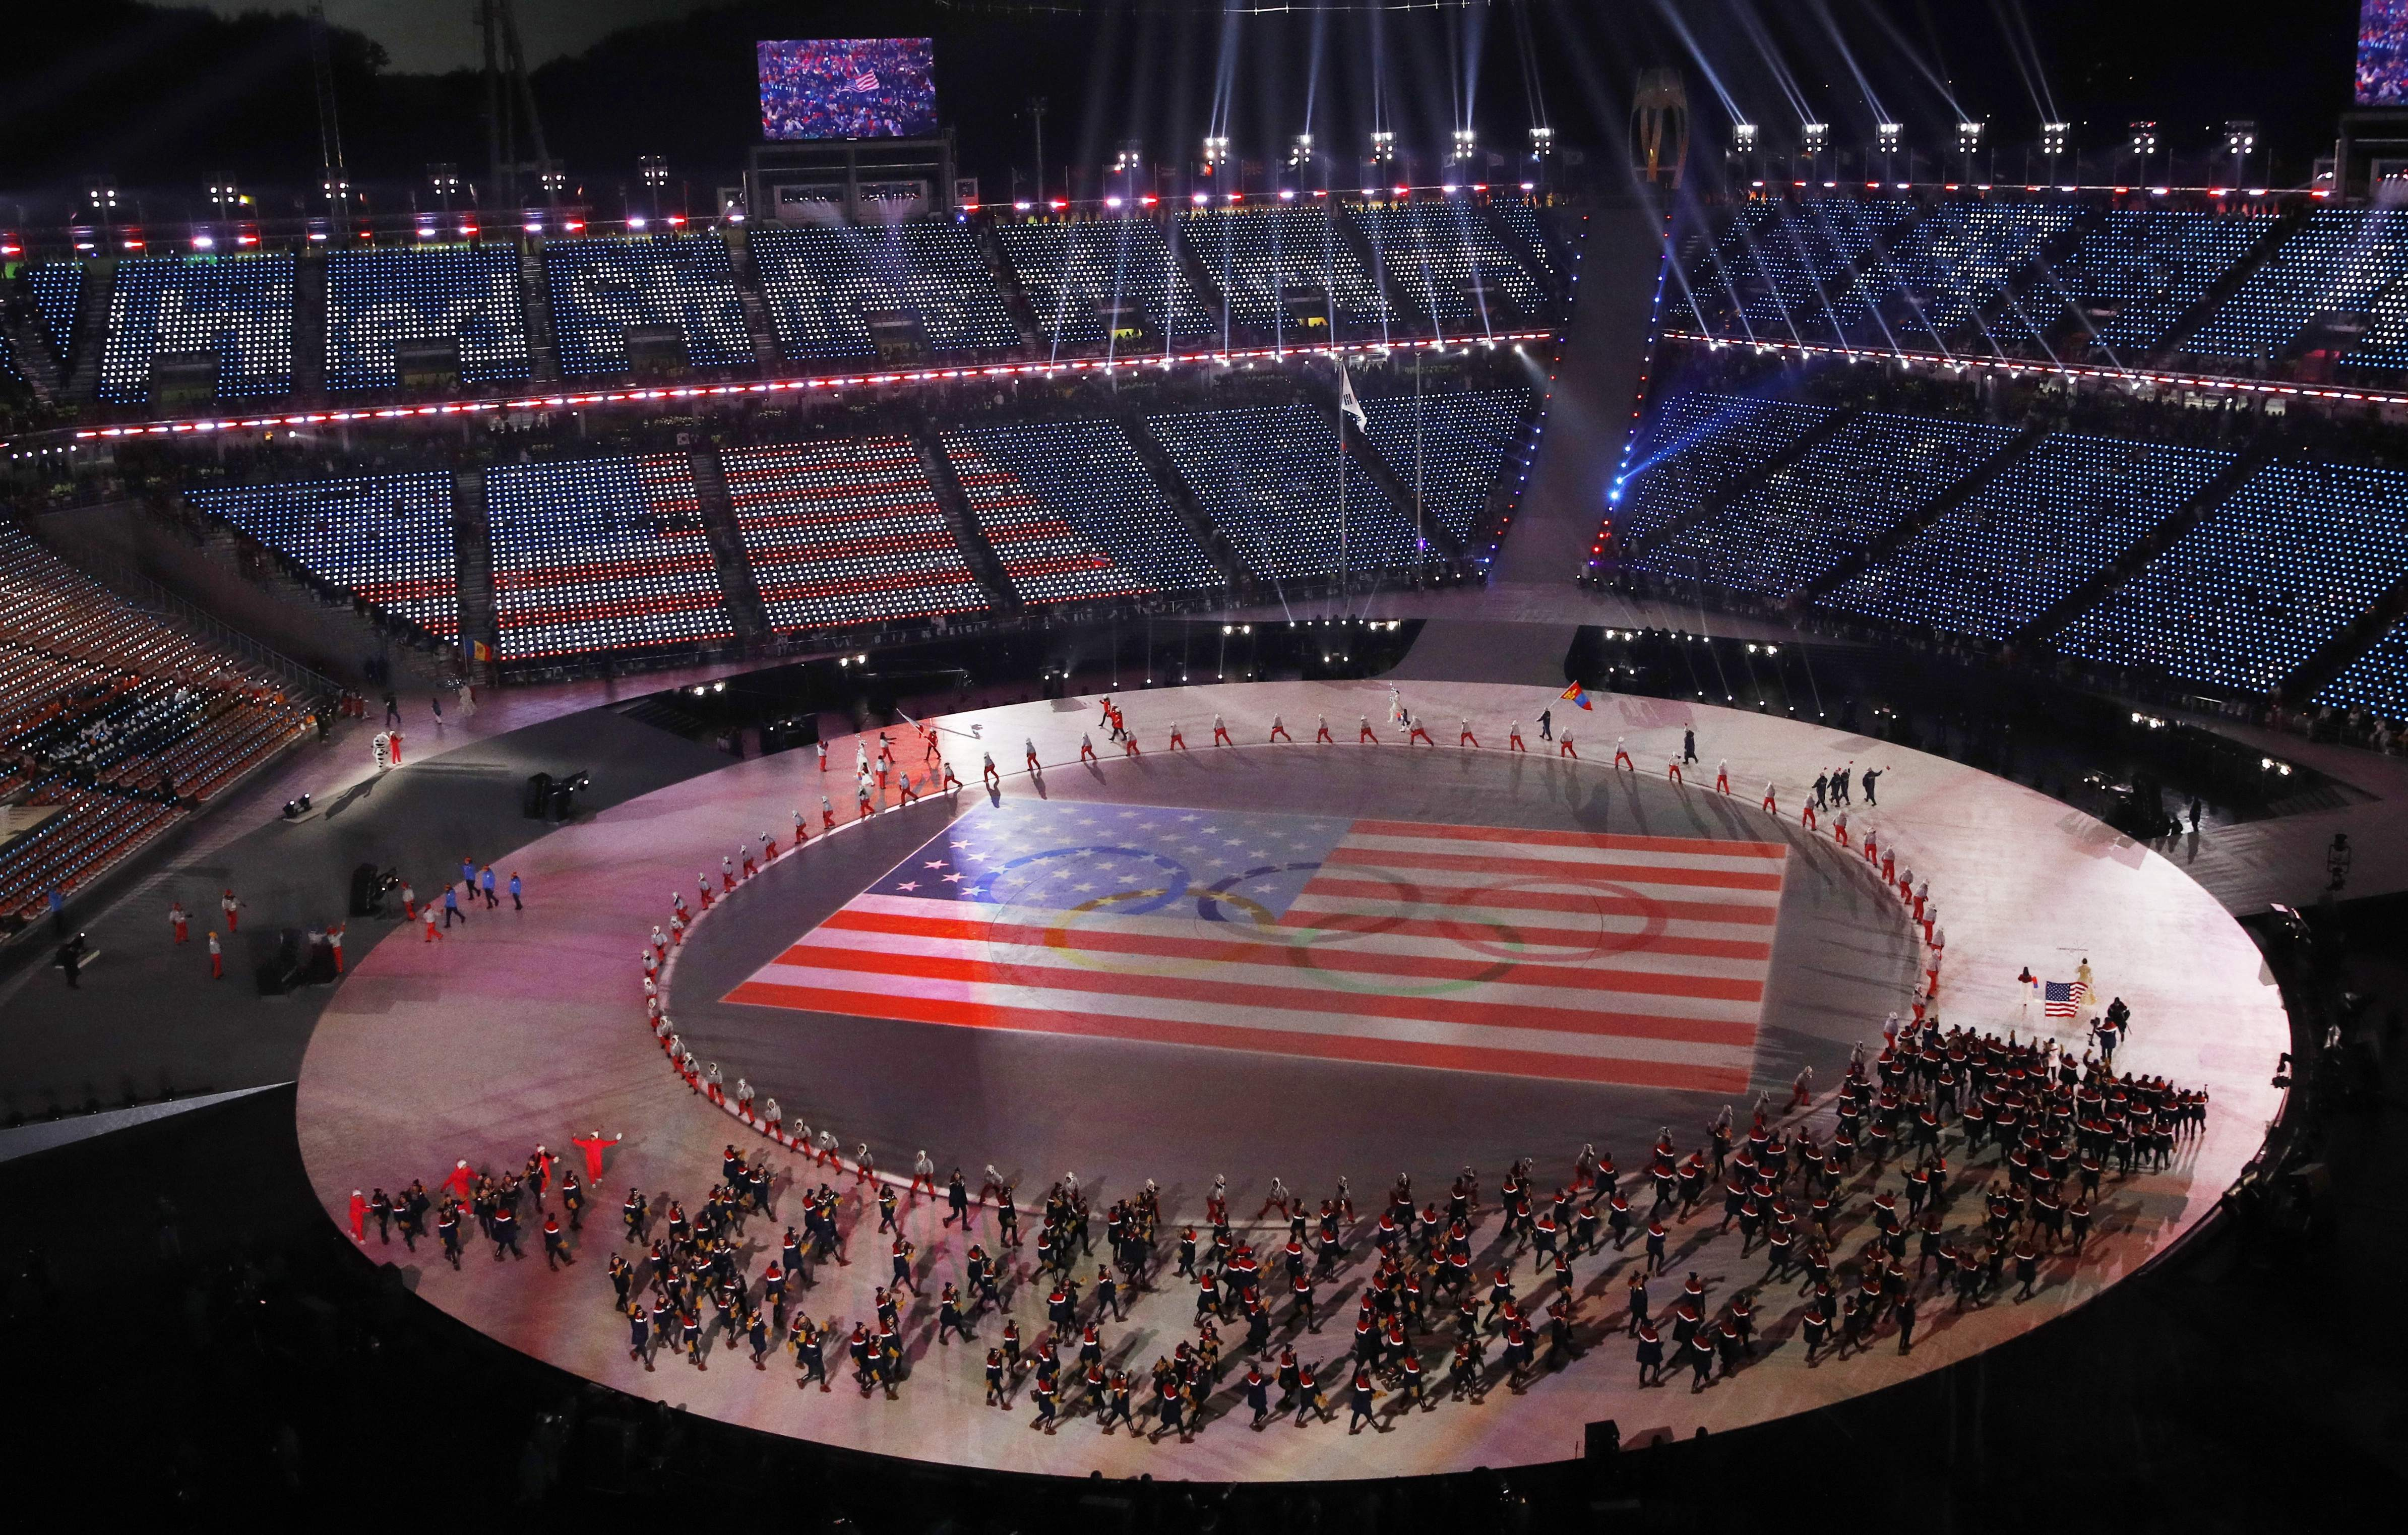 The team from the United States walk onto the stage during the opening ceremony of the 2018 Winter Olympics in Pyeongchang, South Korea, Friday, Feb. 9, 2018. (AP Photo/Charlie Riedel)